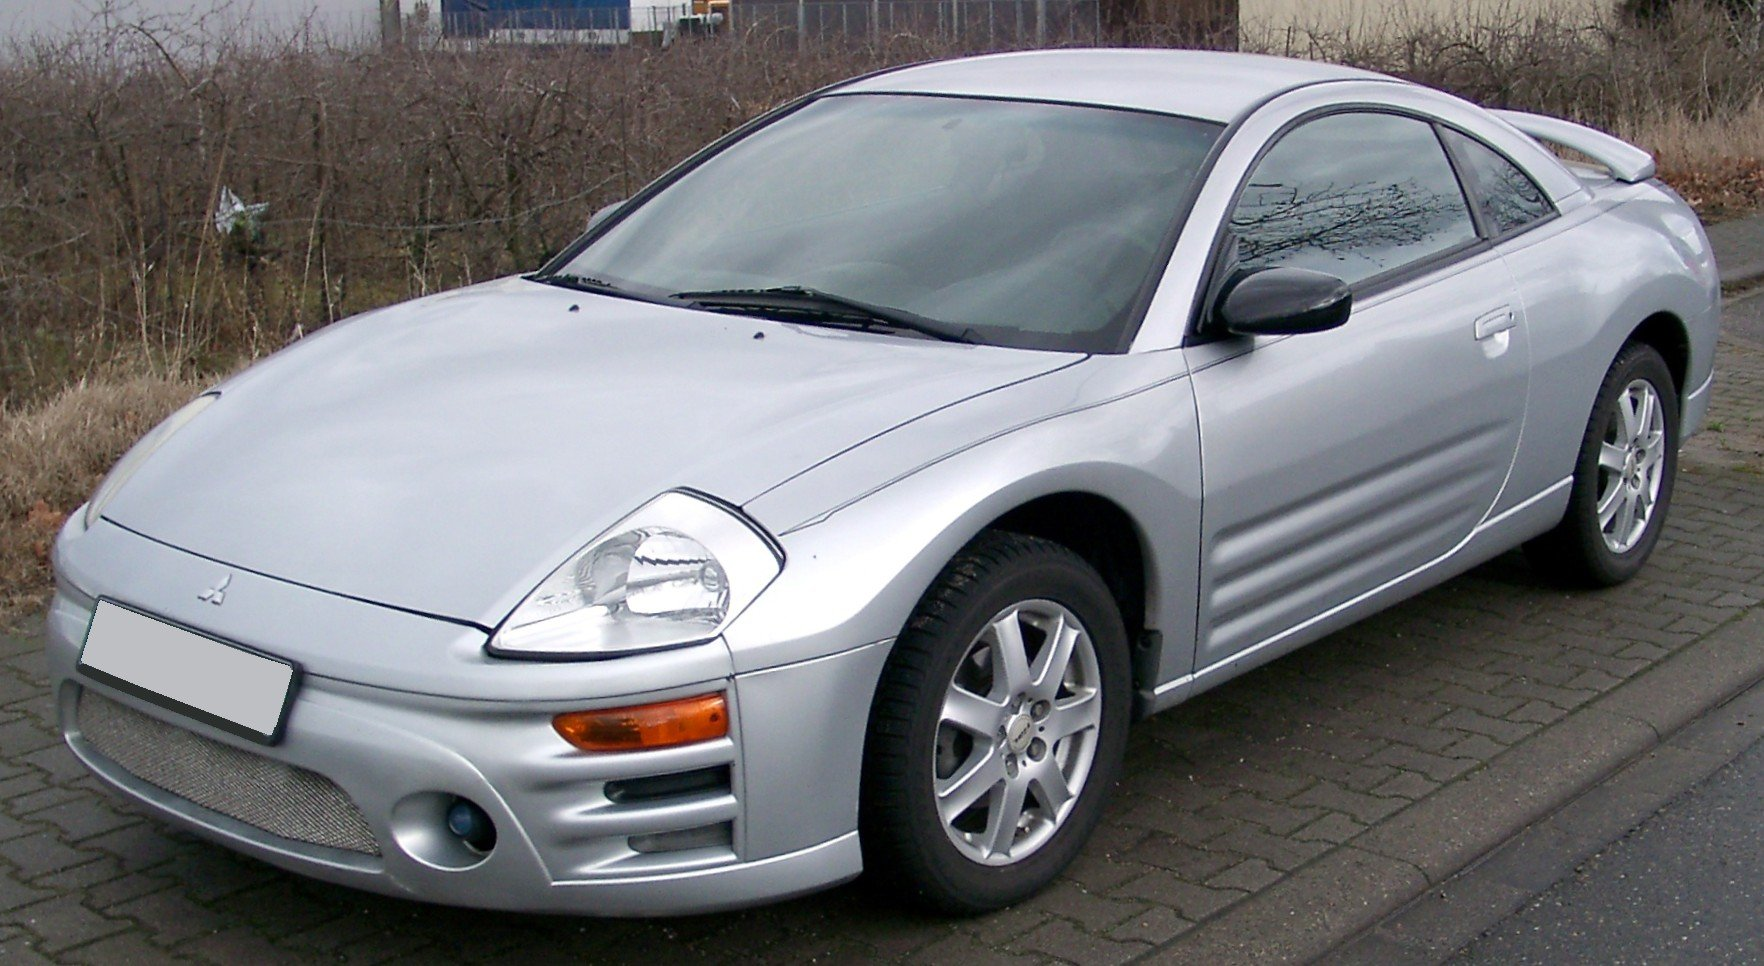 mitsubishi eclipse spyder iii (d30) 2000 pictures #12